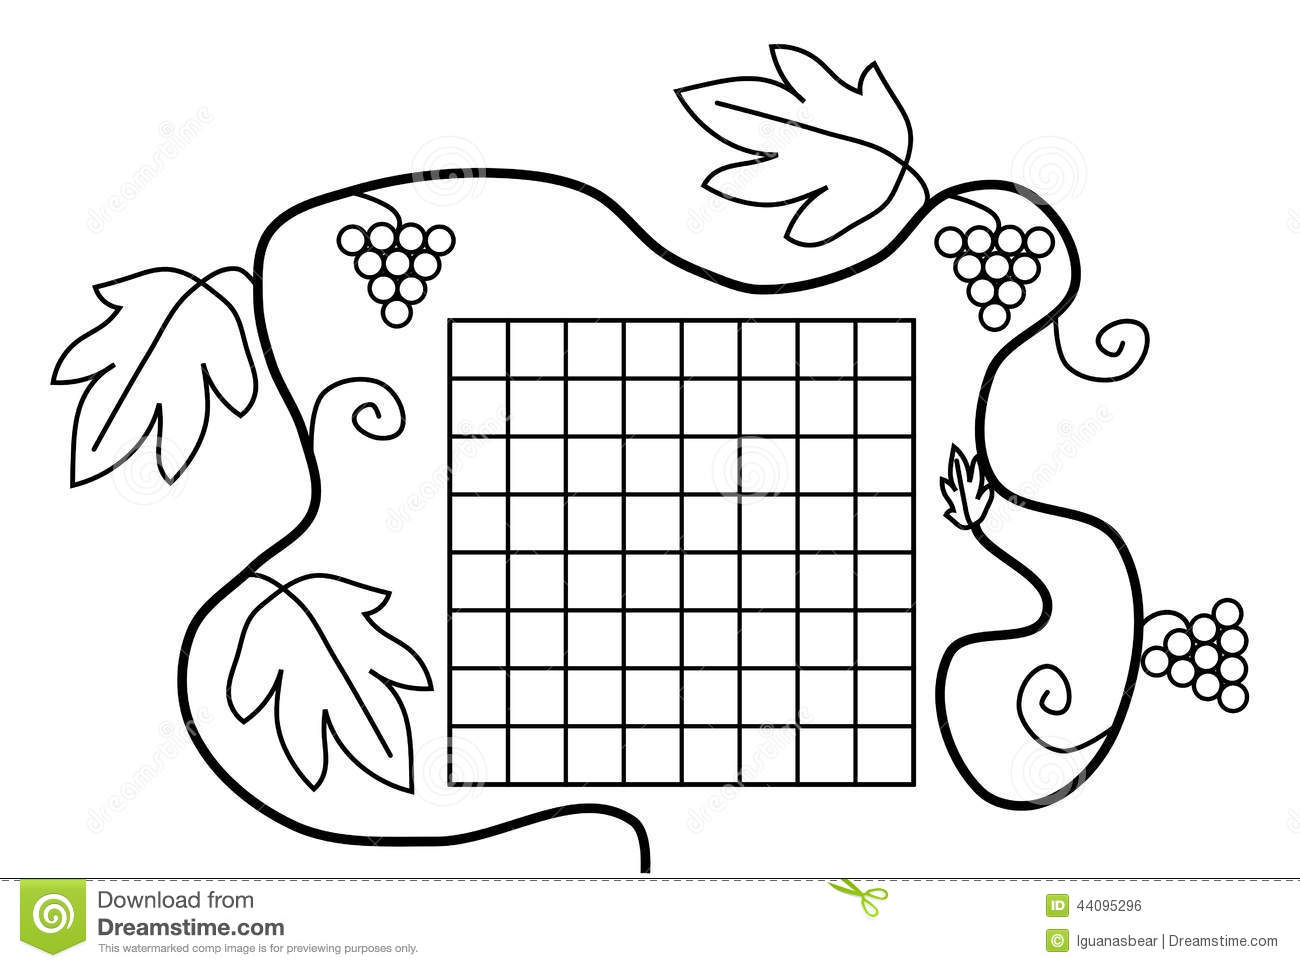 1300 x 968 jpeg 100kB, Coloring book page black white school timetable ...